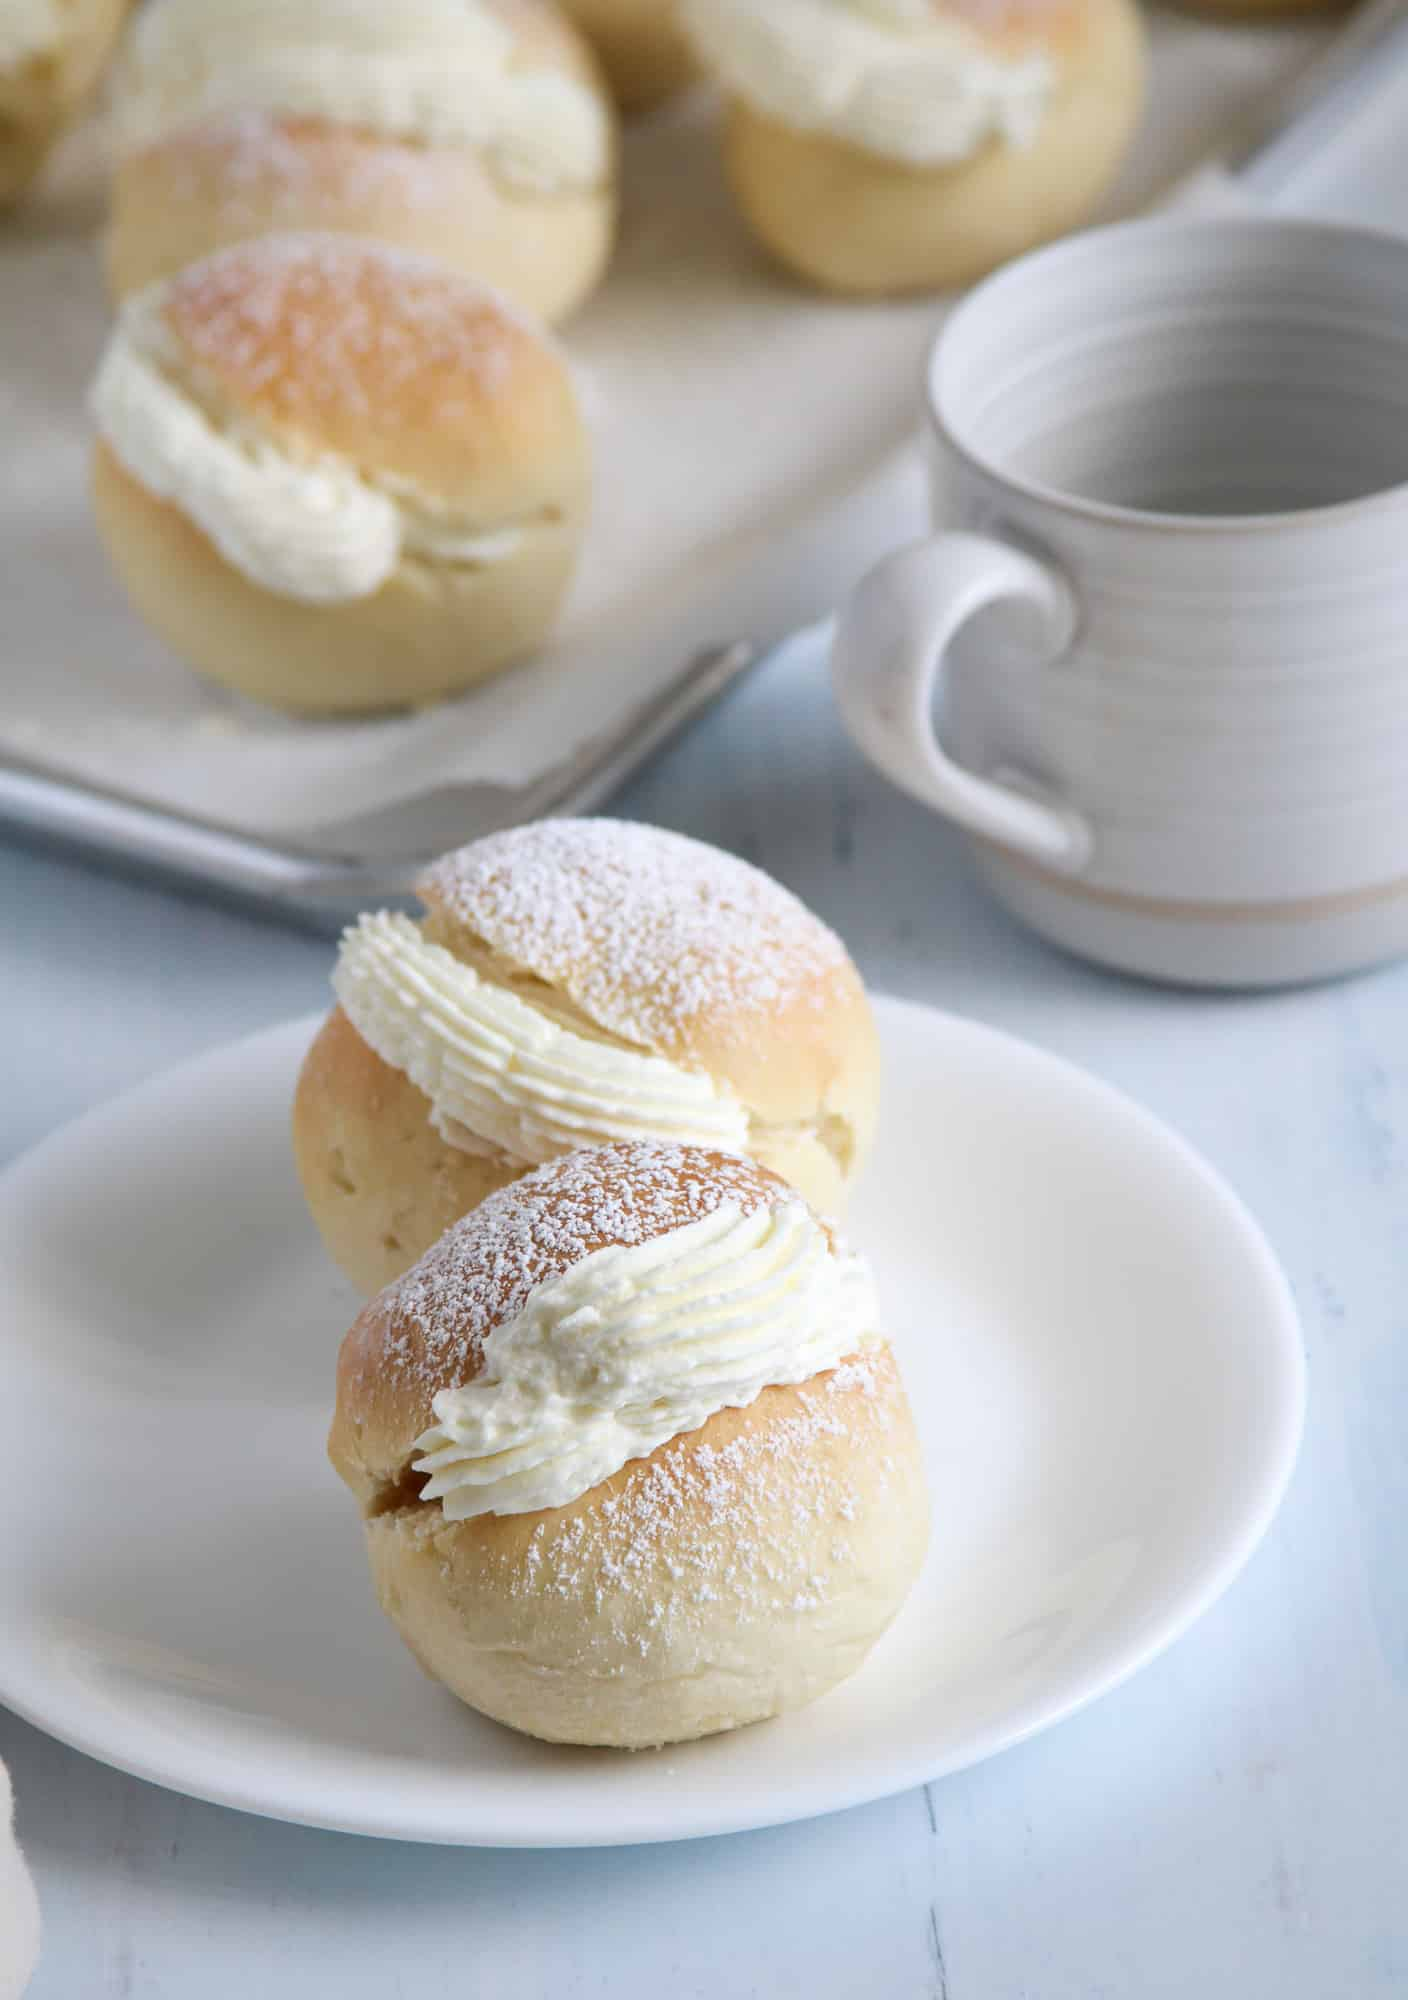 Two cream buns served on a plate.